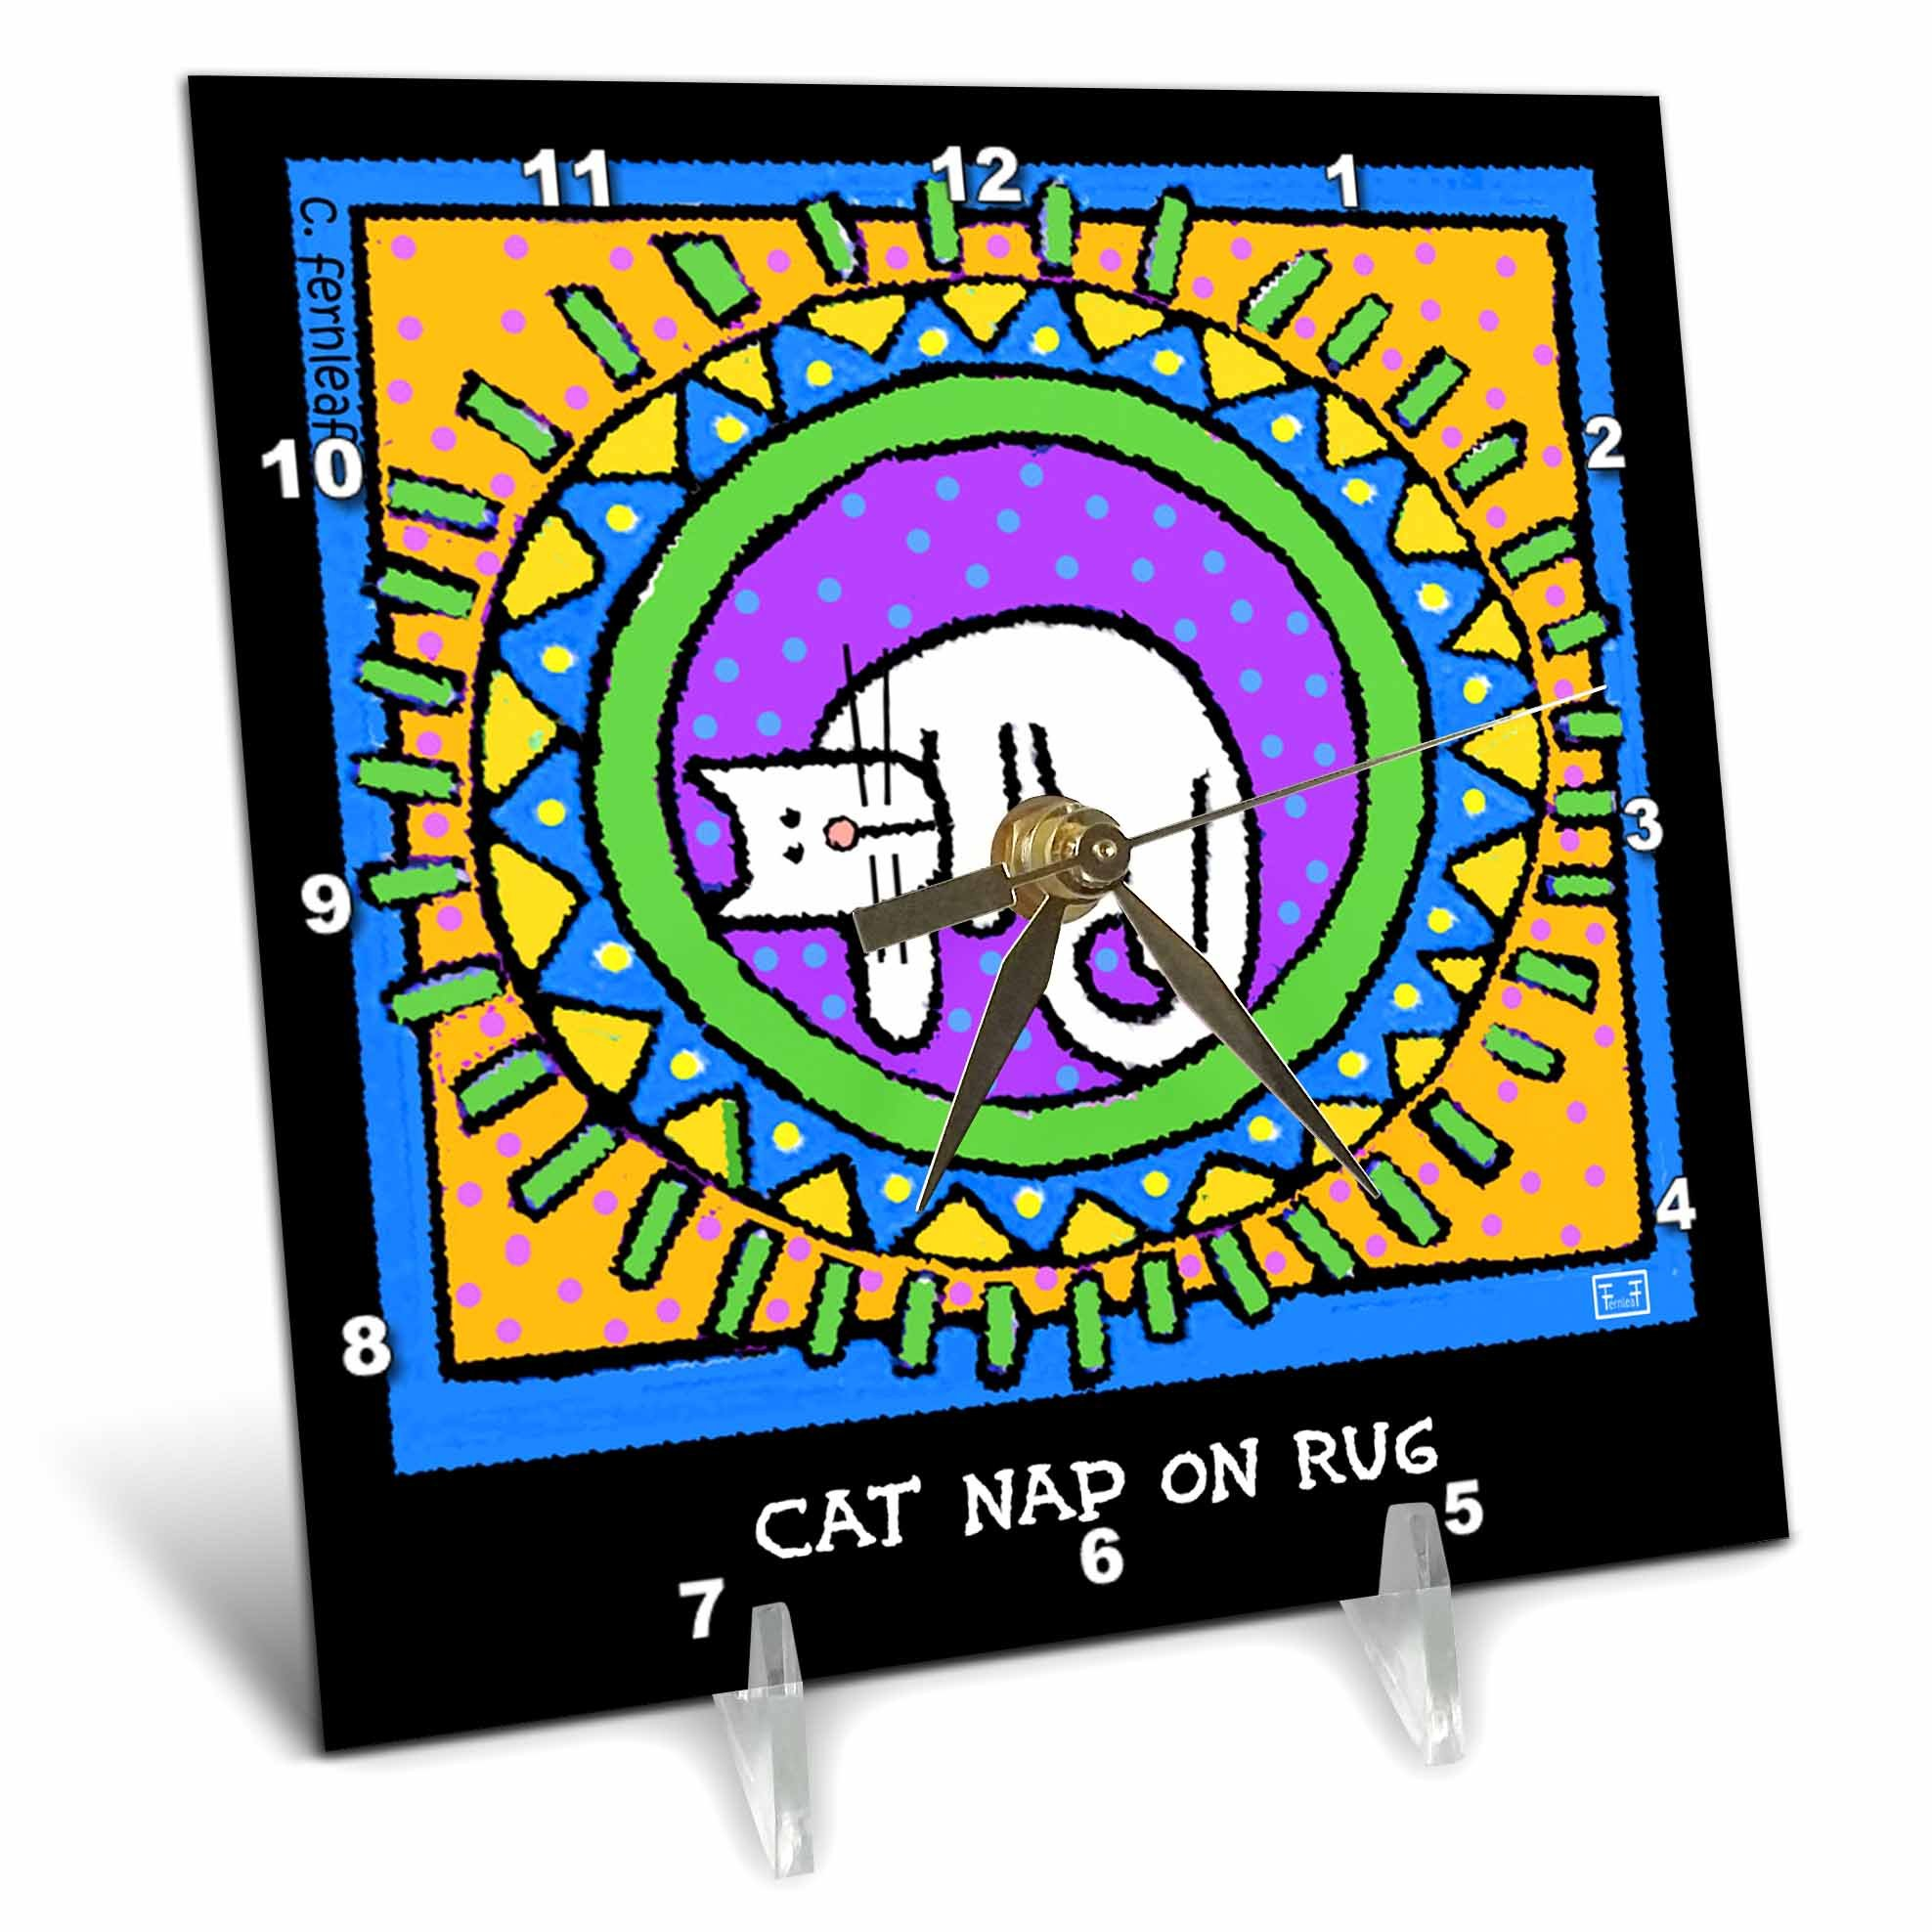 3dRose dc_36674_1 Cat Nap on Rug, Cartoon Cats, Cats, Cat, Funny Cats, Kittens. Pets, Funny Pets, Animals Desk Clock, 6 by 6''